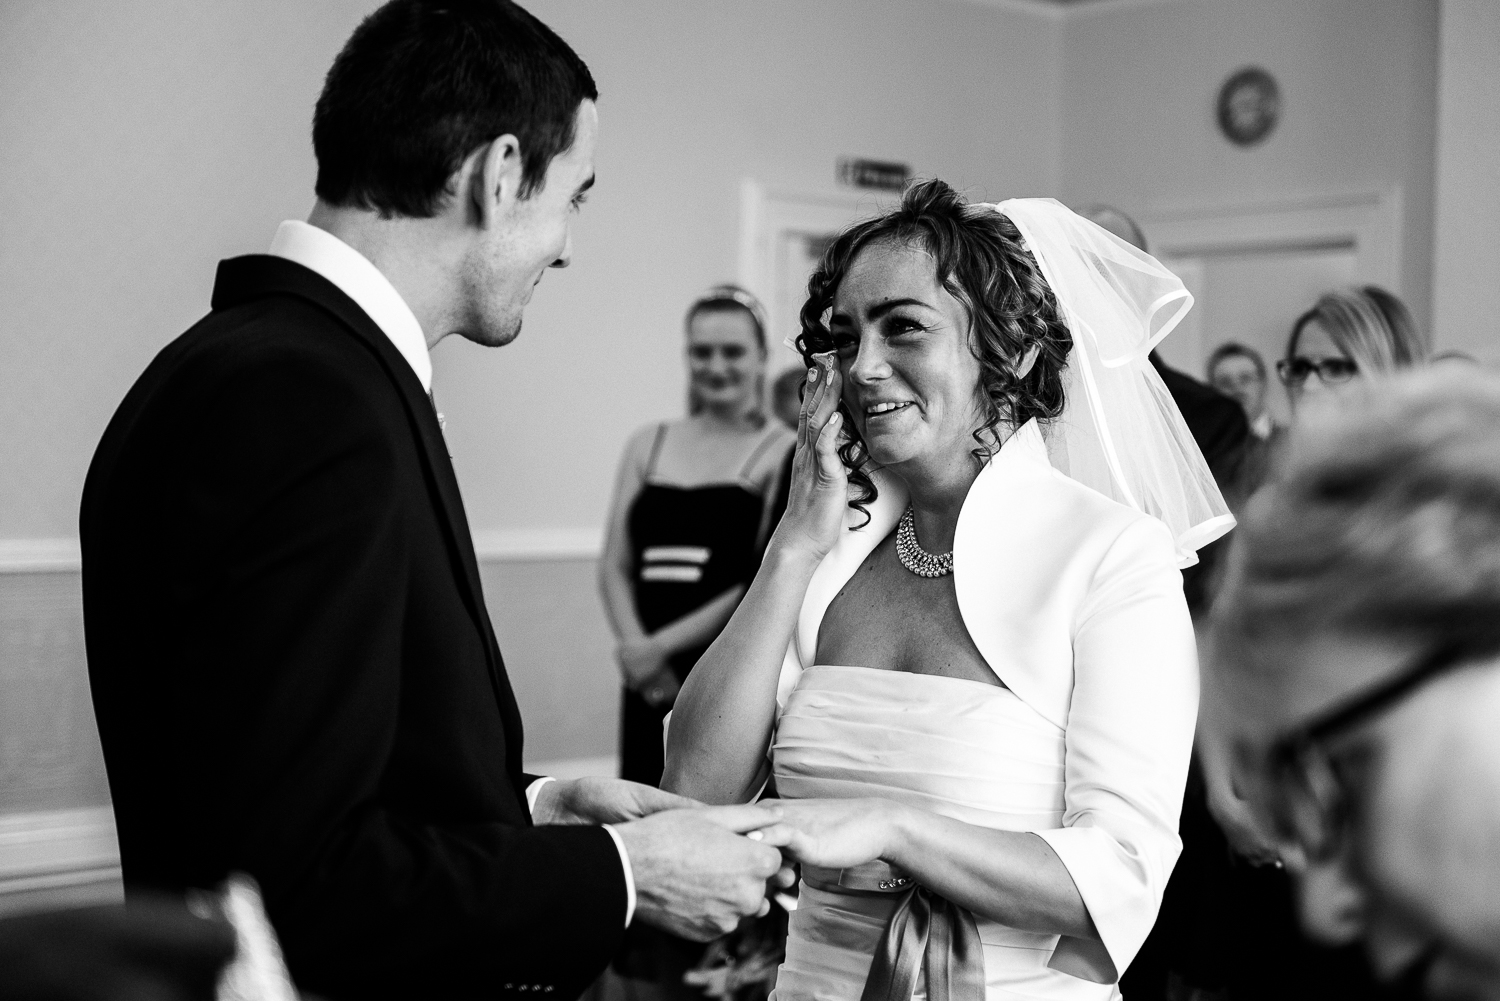 Autumn Wedding Photography in Stoke-on-Trent, Staffordshire with Hummer Limousine - Jenny Harper-51.jpg